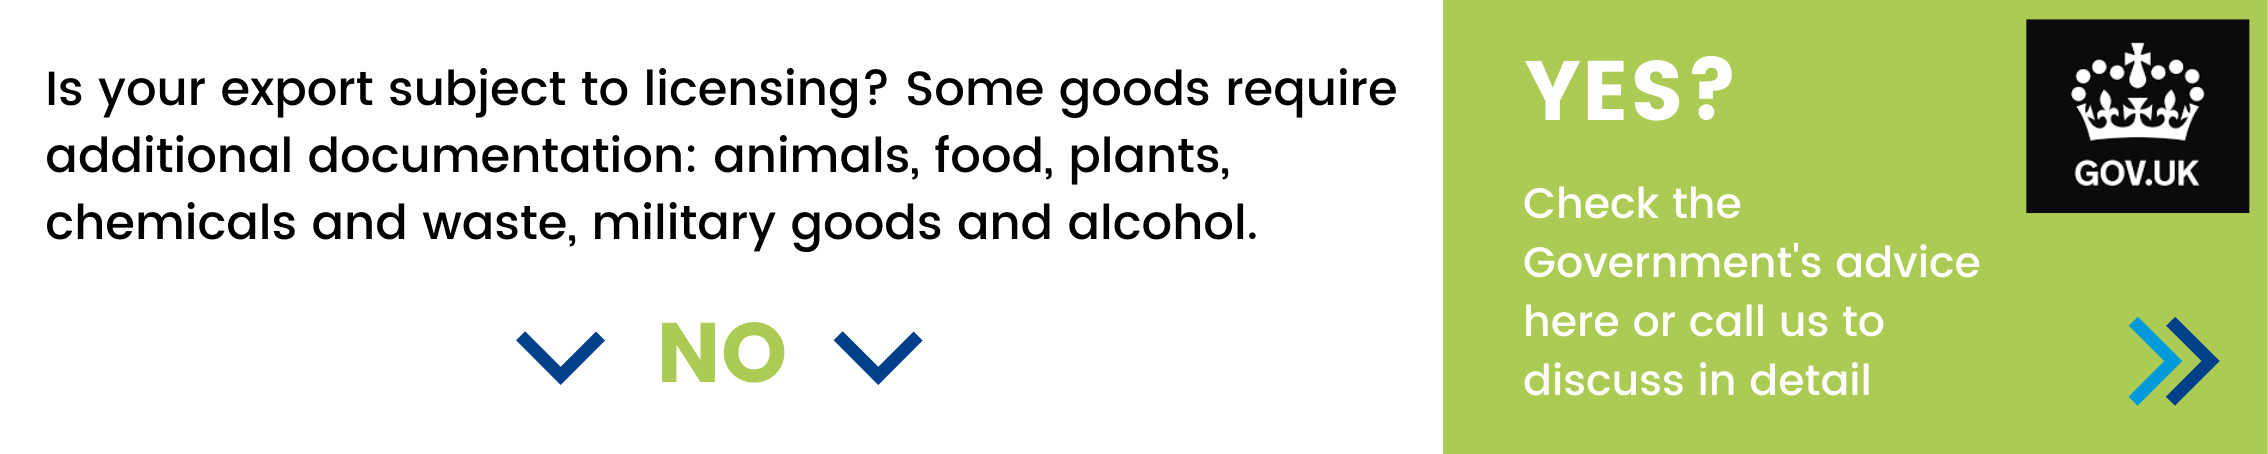 Is your export subject to licensing? Some goods require additional documentation: animals, food, plants, chemicals and waste, military goods and alcohol. If yes - check the Government's advice here or call us to discuss in detail.